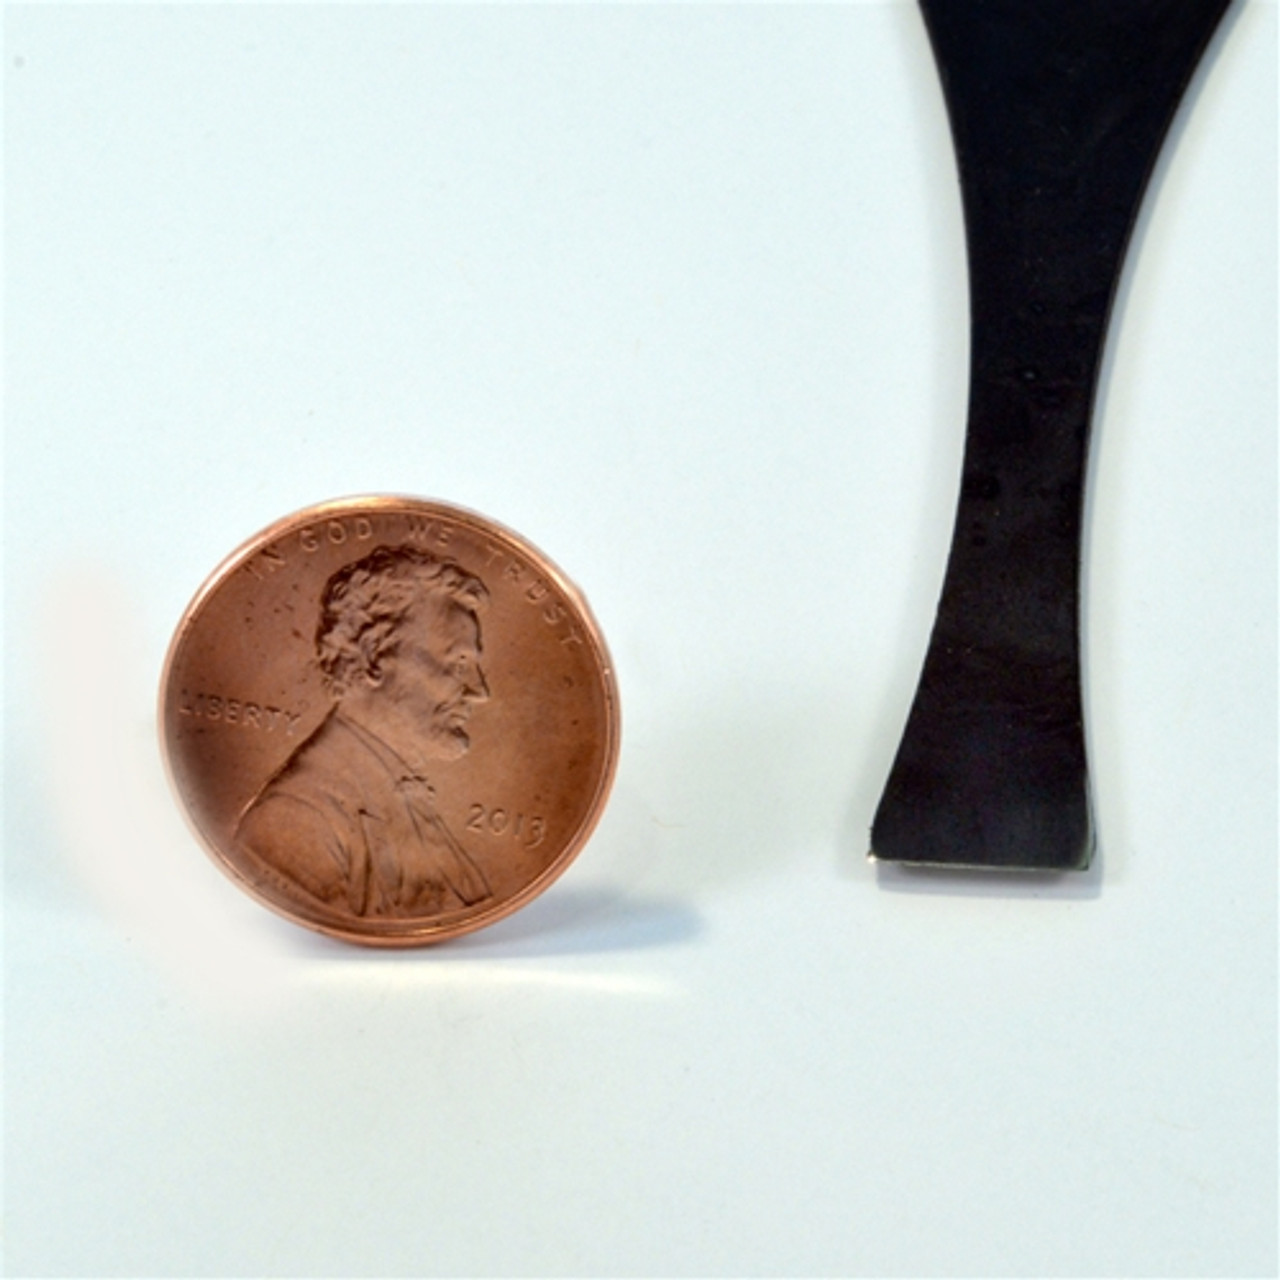 """Flexcut FR316 Palm Carving  #1 x 3/8"""" Chisel showing the size of the single bevel chisel compared to a penny."""